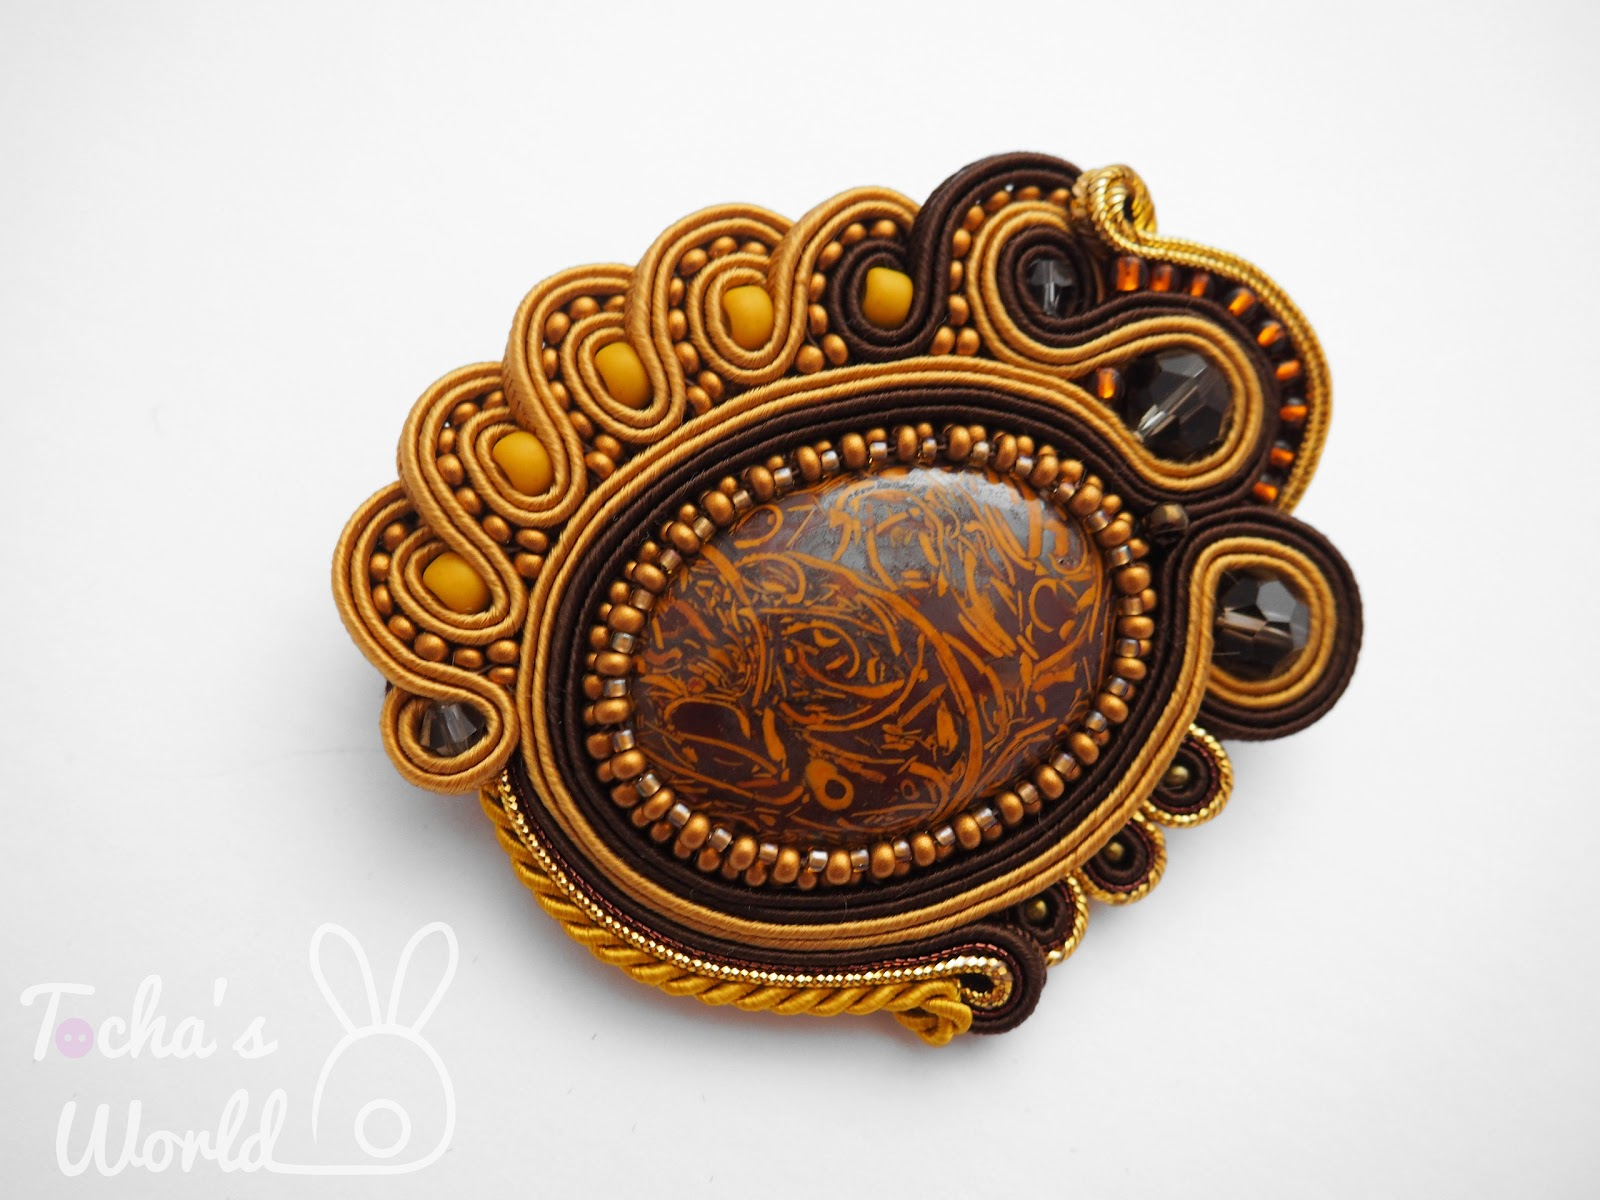 beaded, brooch, brown, cabochon, gold, soutache, autumn, Art Village, Glasgow, Scotland, jewellery, jewelry, gift, Shawlands, Tocha's World